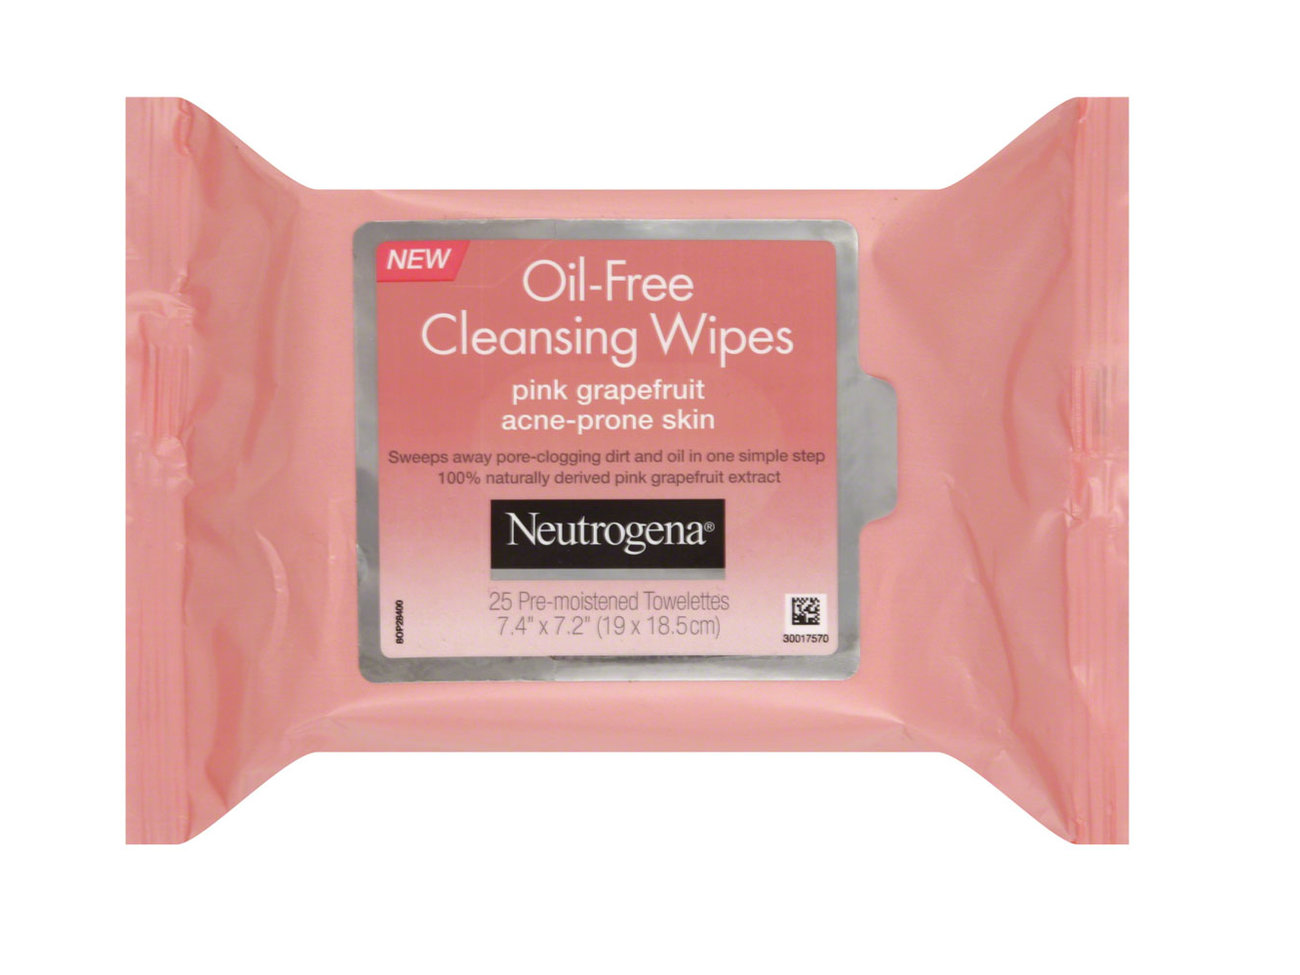 neutrogena-wipes-KEKEPALMER0816.jpg